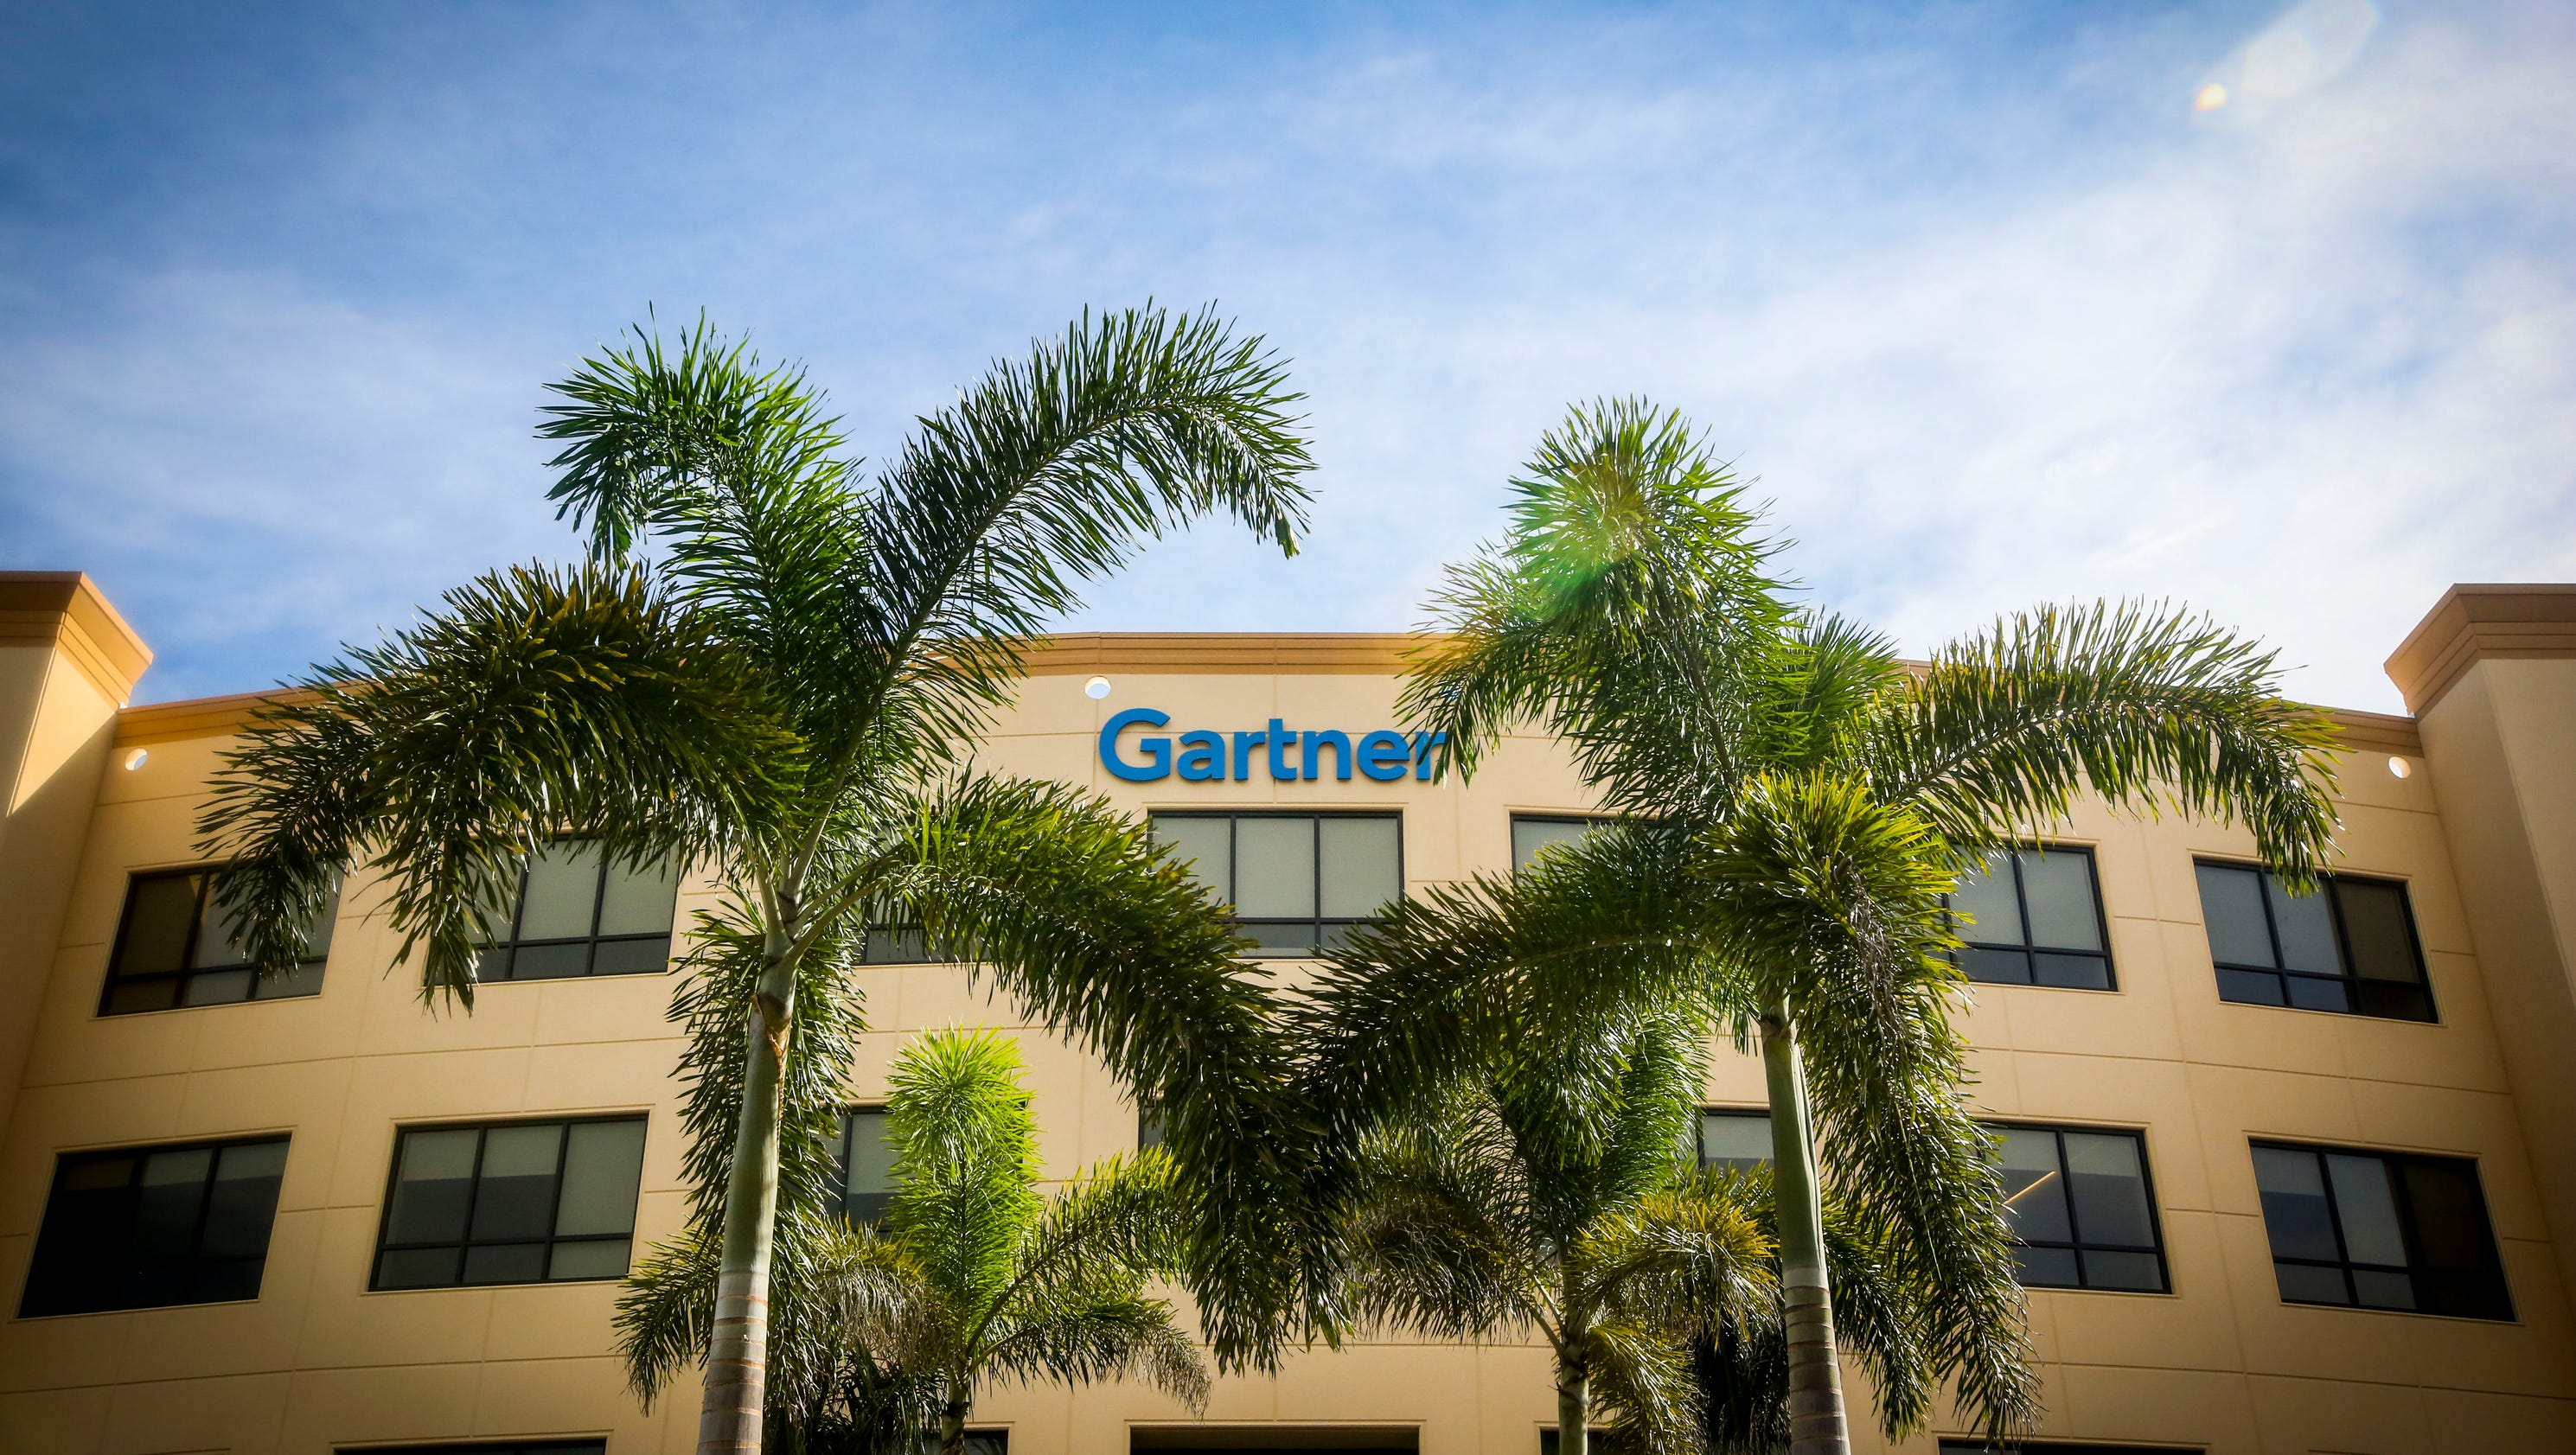 Gartner On The Rise In Gateway